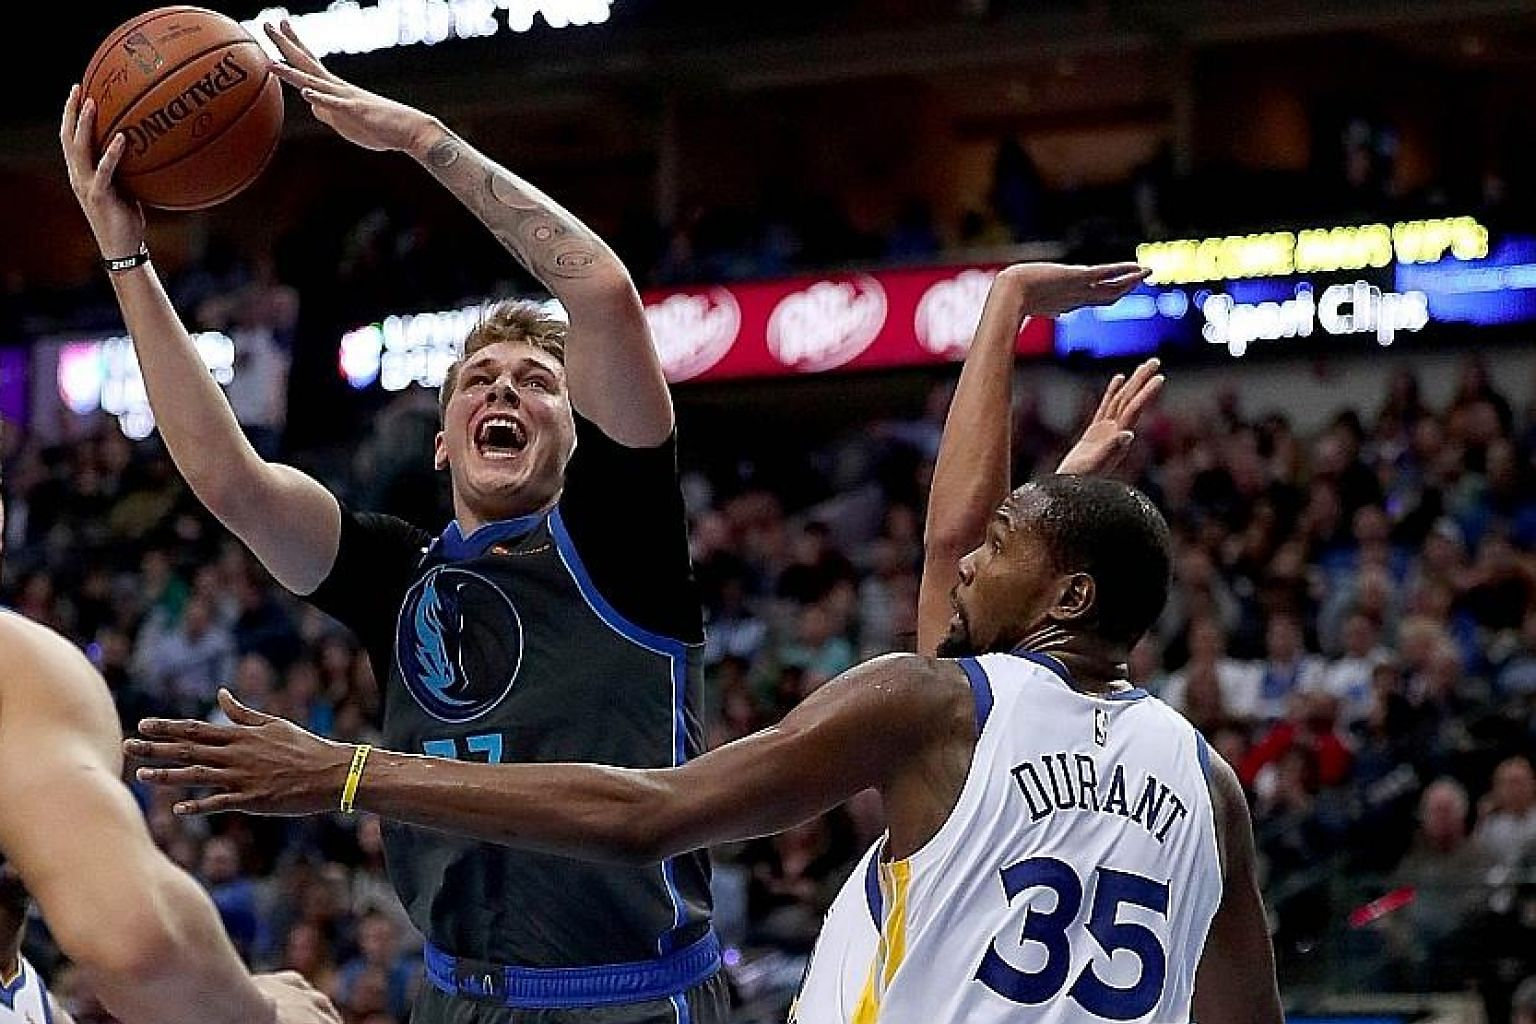 Dallas Mavericks' Luka Doncic driving to the basket against Golden State Warriors' Kevin Durant at the American Airlines Centre in Texas on Saturday. The Warriors lost a second straight game for the first time this season.